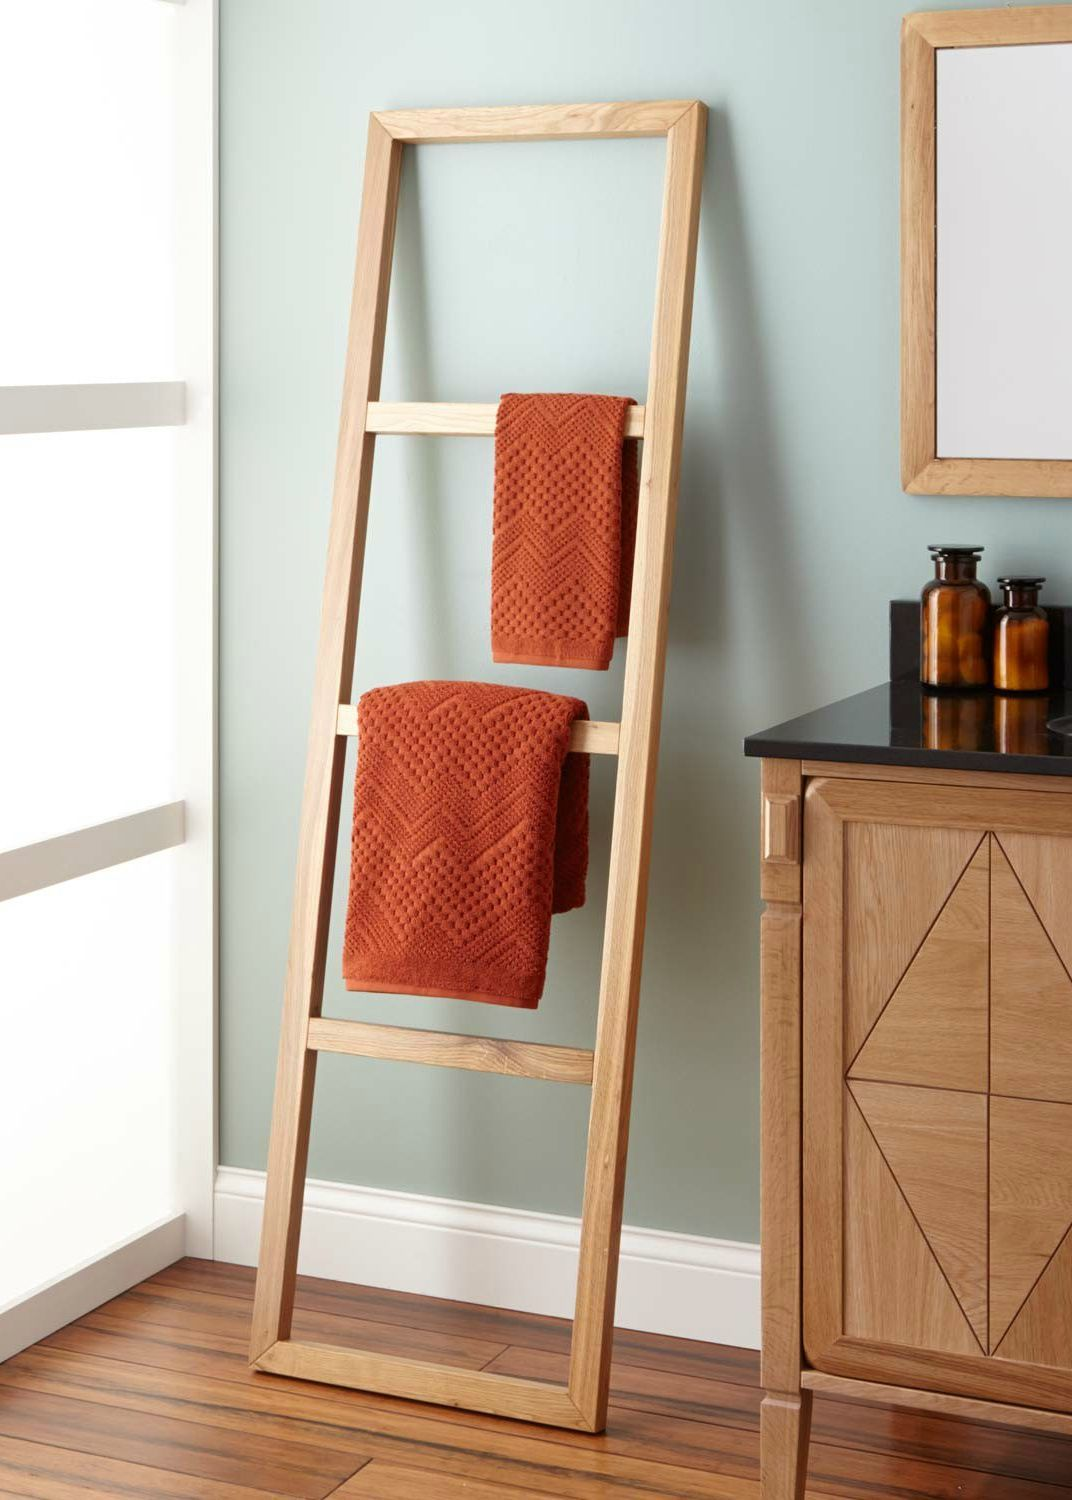 Stokes Teak Ladder Towel Rack Bathroom Ladder Towel Racks Towel Ladder Towel Rack Bathroom